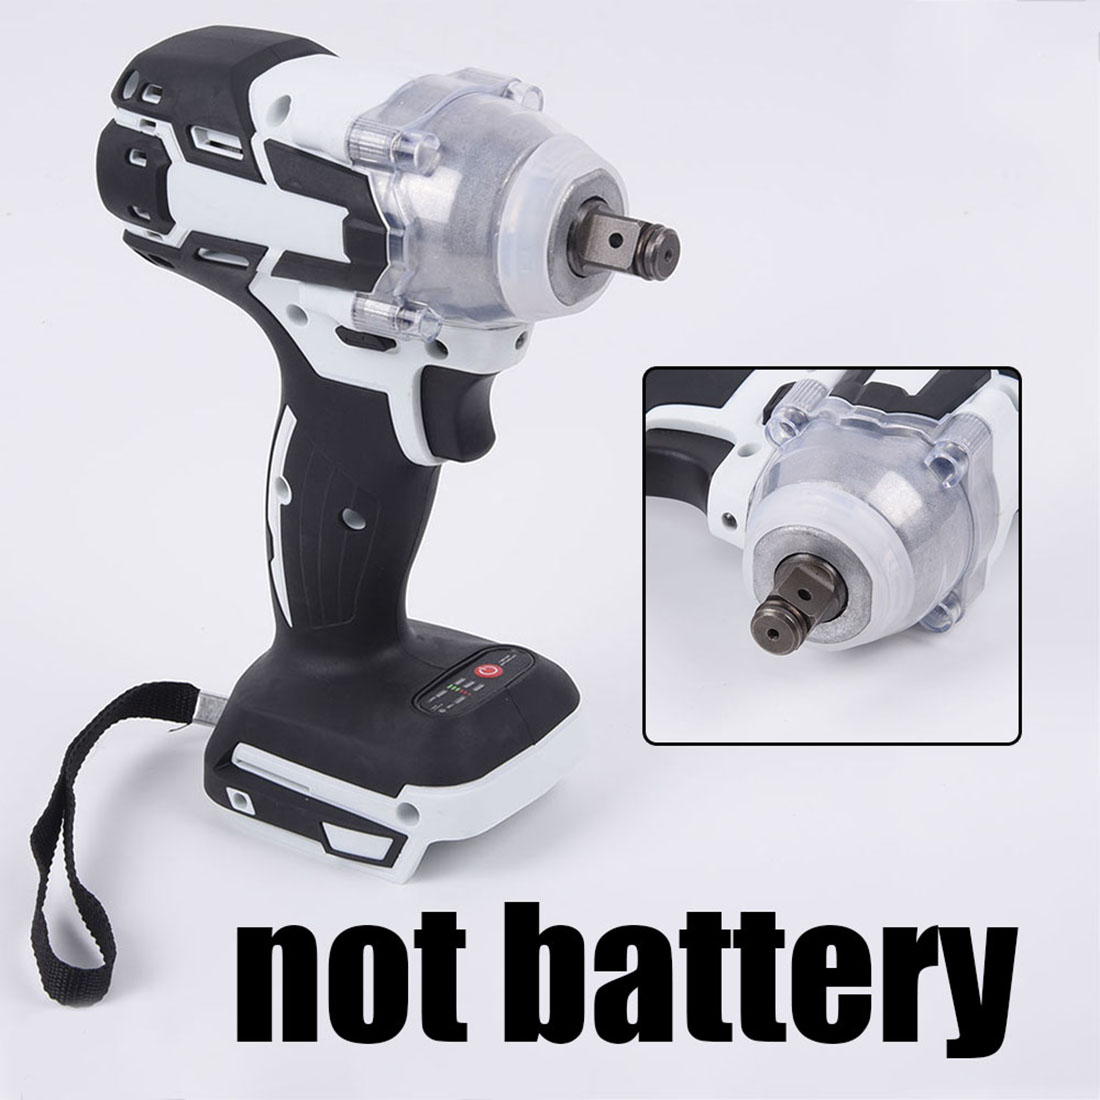 1280W Brushless Electric Hammer Cordless Drill 19800mAH 240-520NM Adjustable 0~3600 RPM 240-520NM Torque No Battery For Home DIY